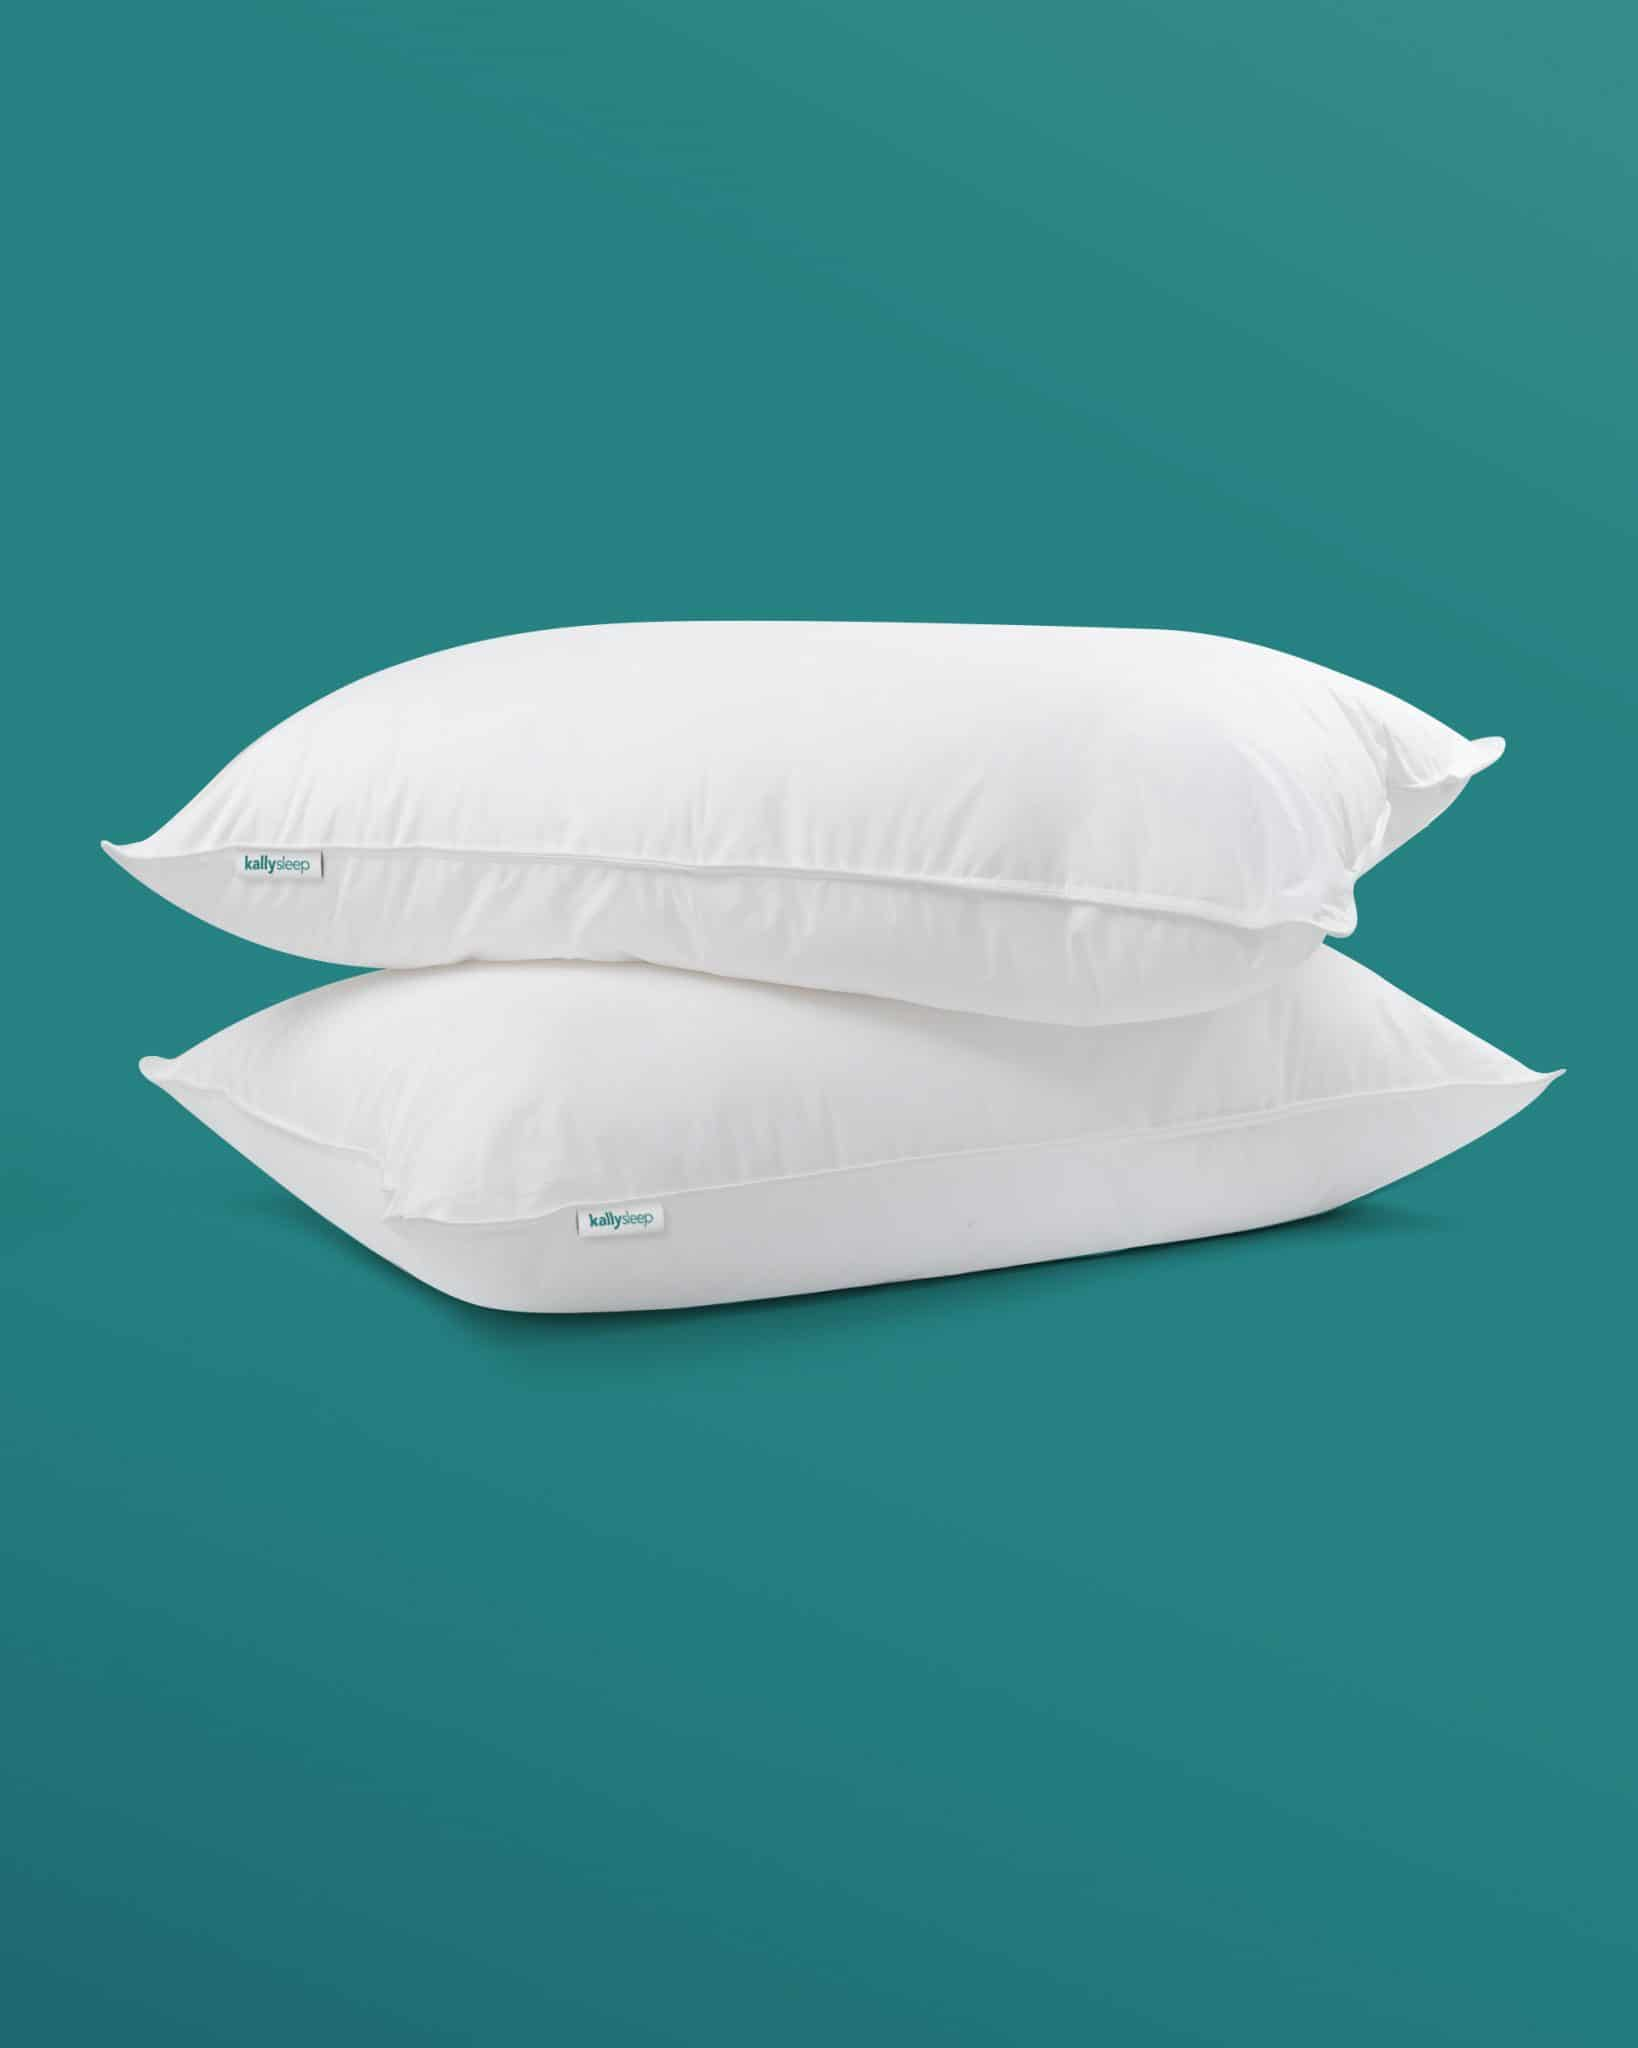 5 Star Hotel Pillows (Twin Pack)